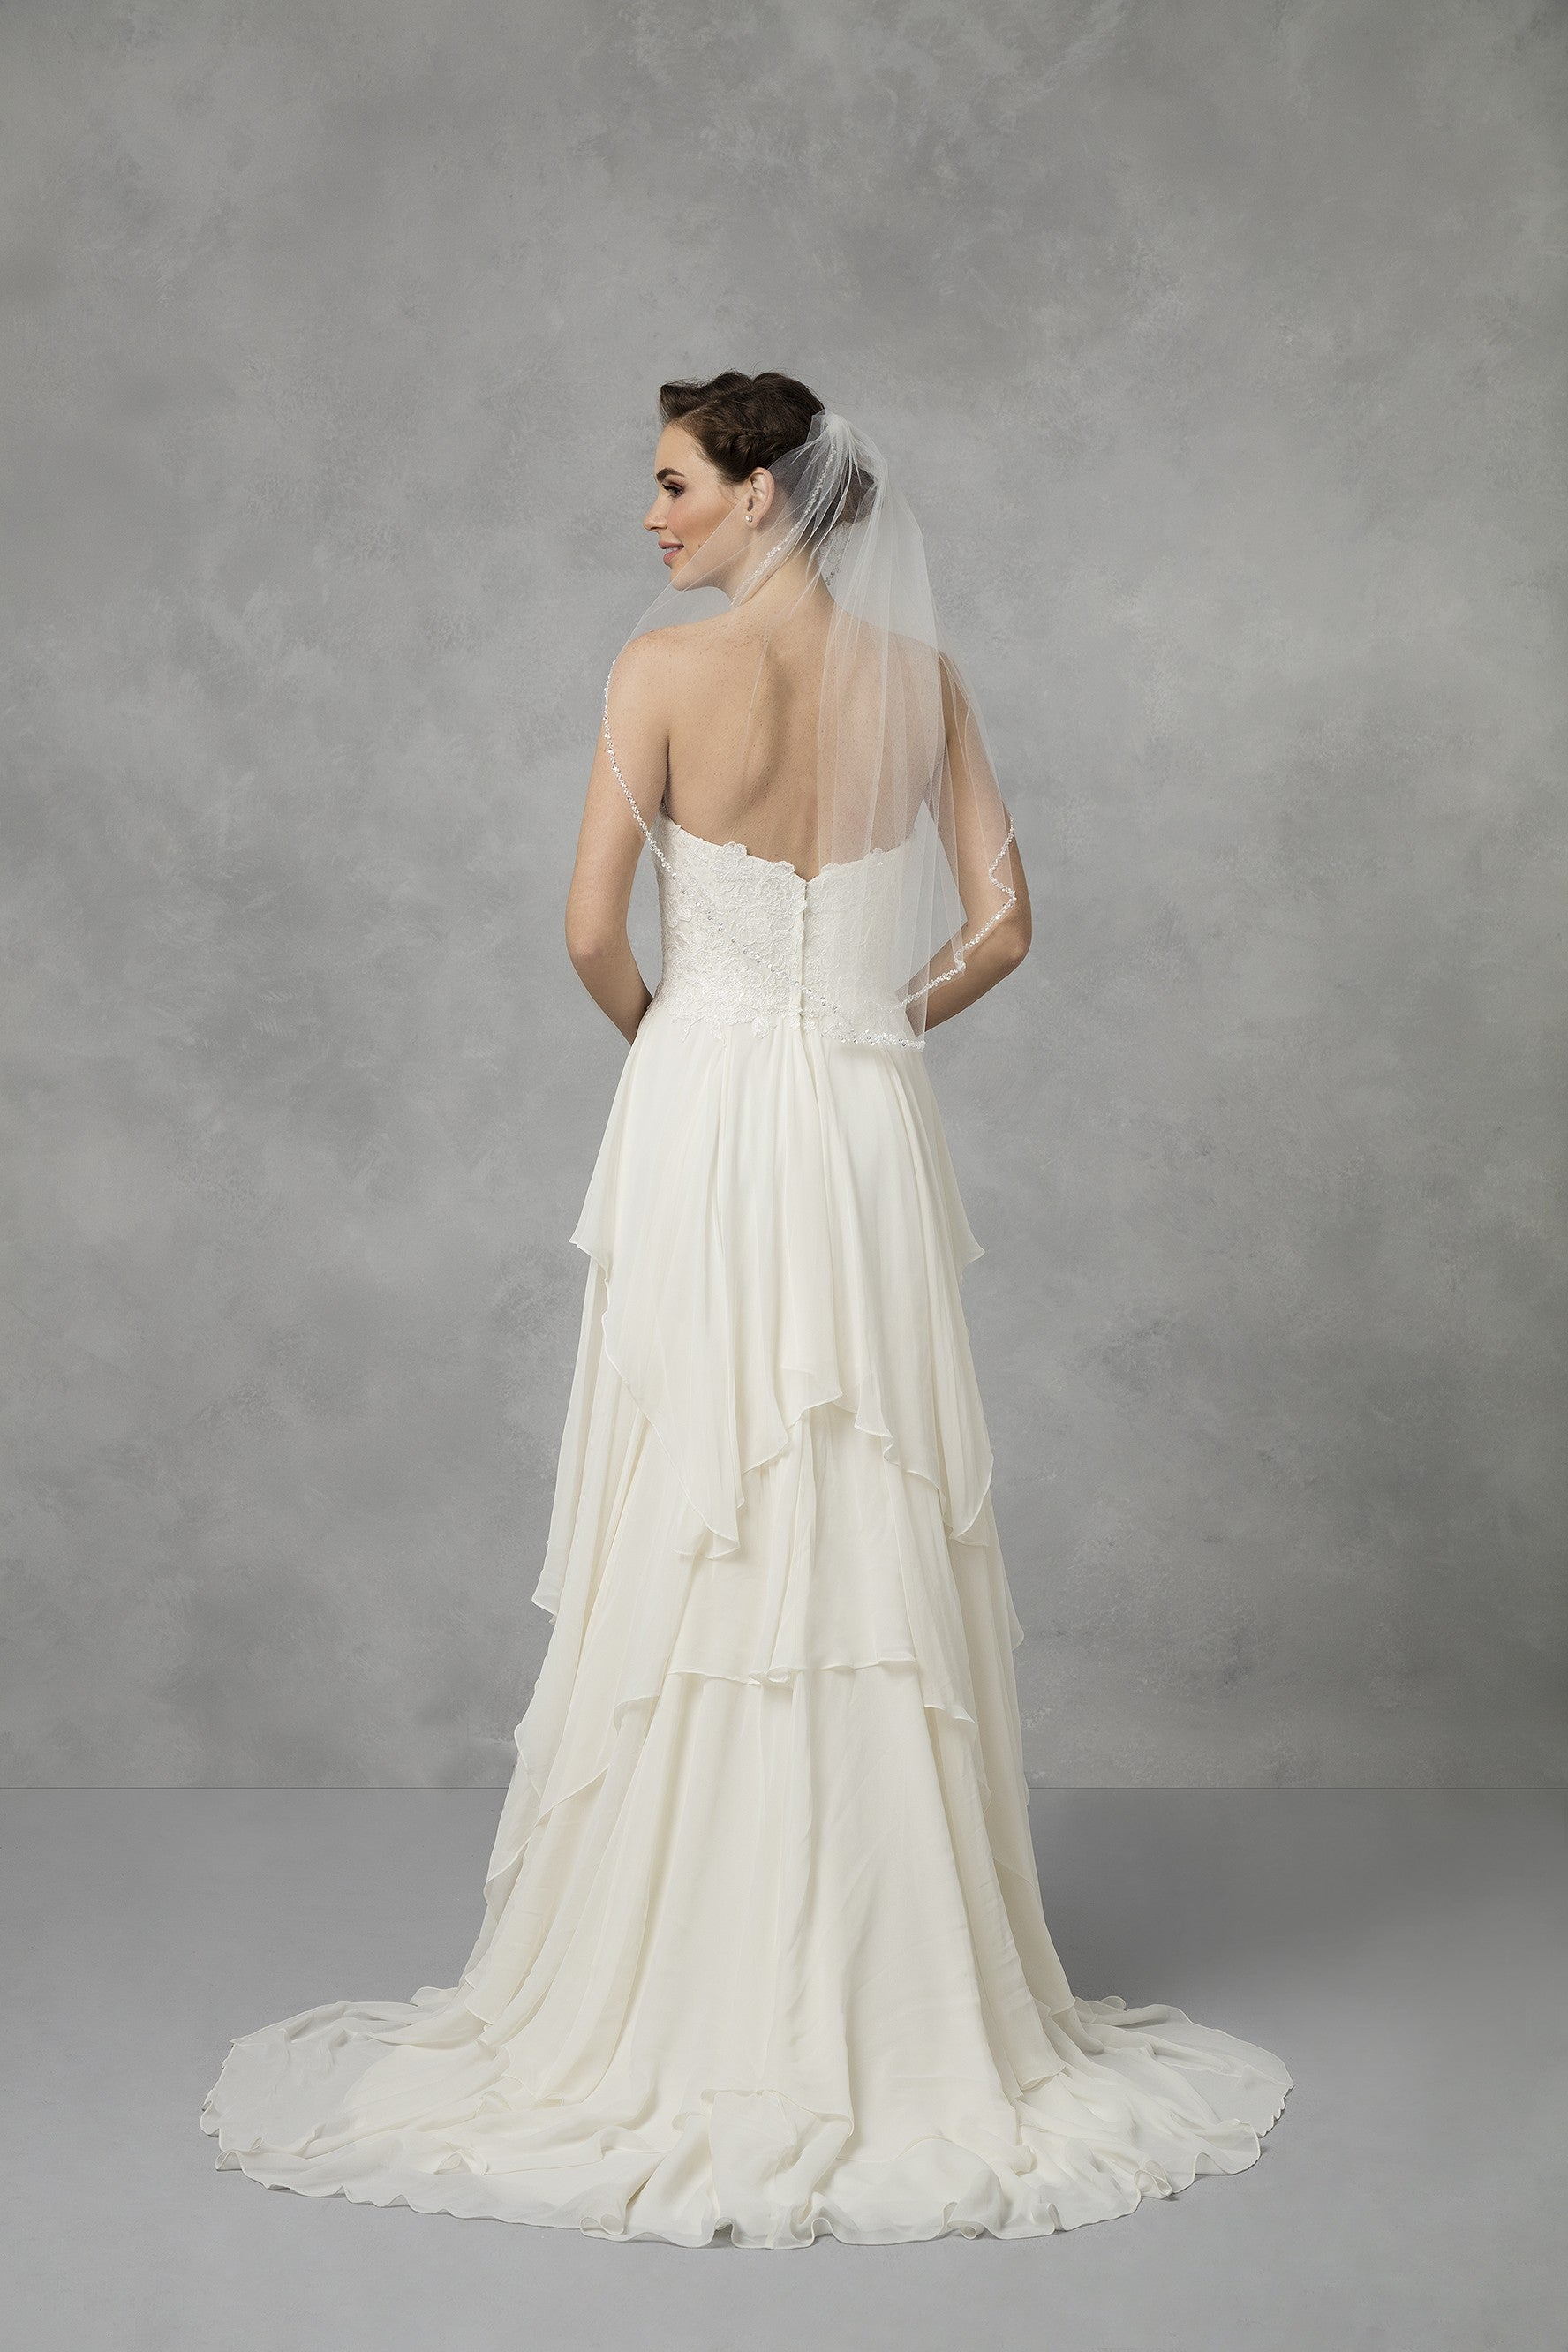 Bridal Elbow Length Veil; 1 Tier with Beaded Edge-VMP9573